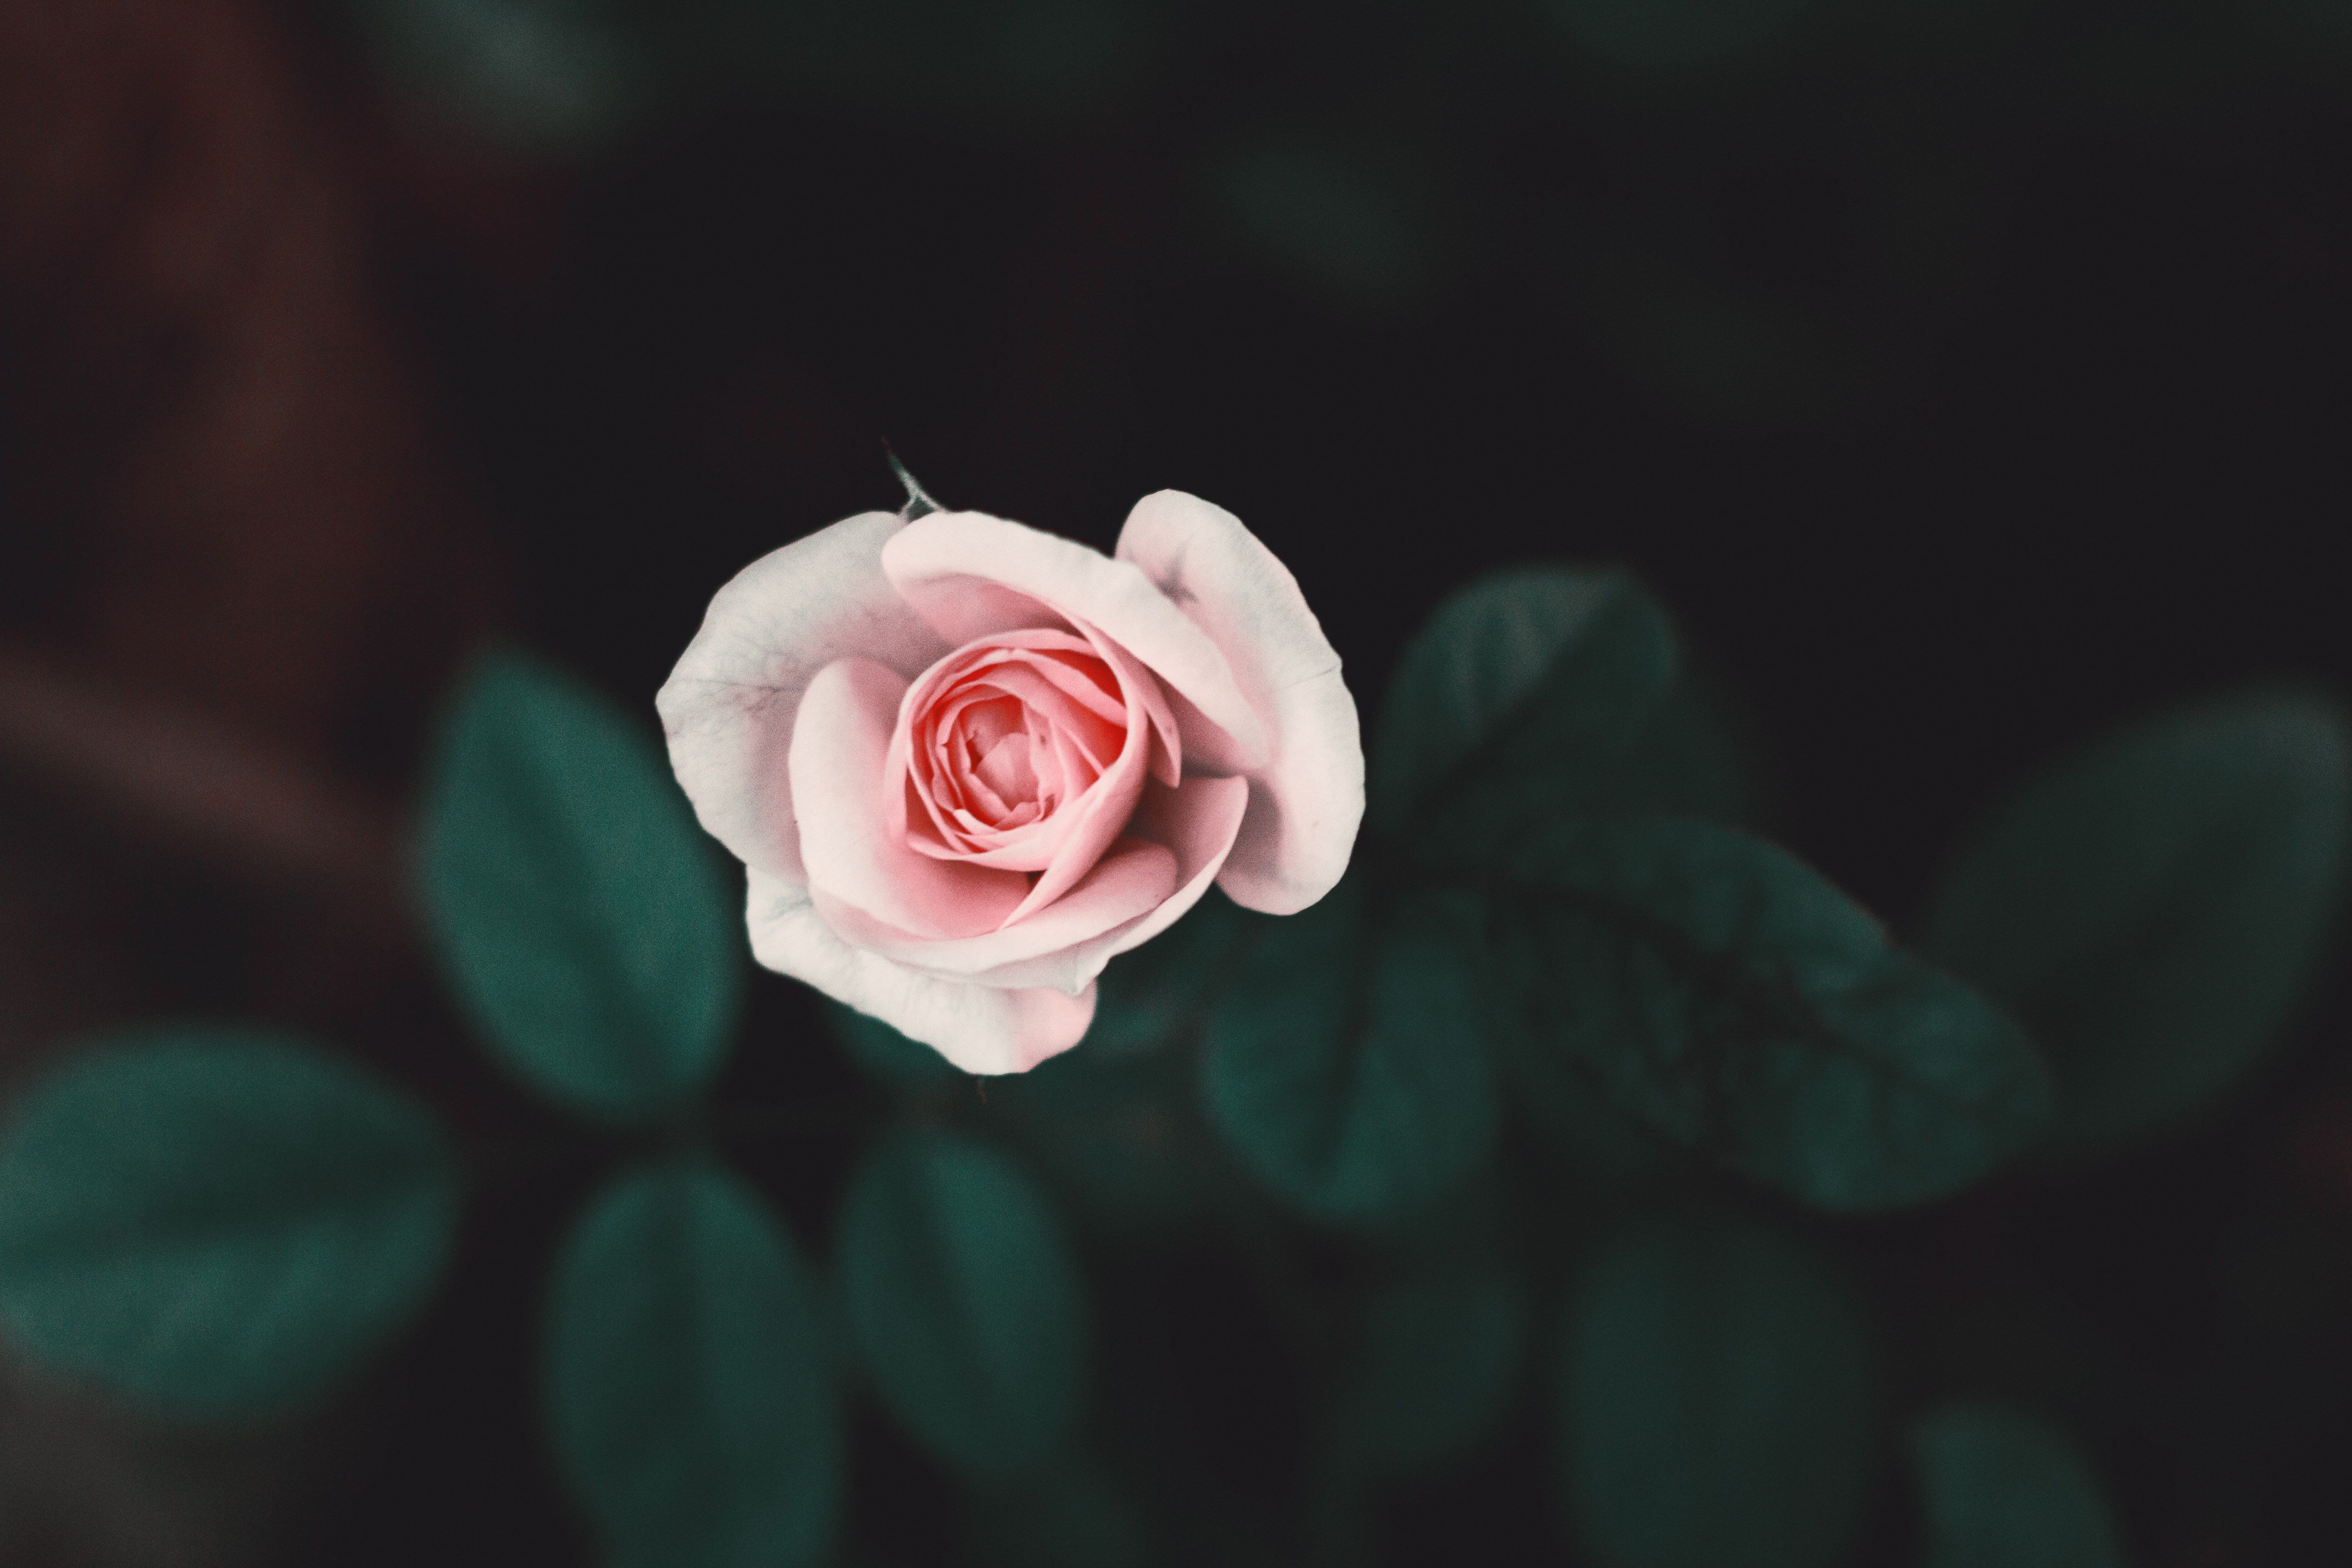 Flowers pic flower images pexels free stock photos with flowers pic flowers pic flower images pexels free stock photos with flowers pic flower deliveries with flowers pic good most beautiful red flowers with flowers pic izmirmasajfo